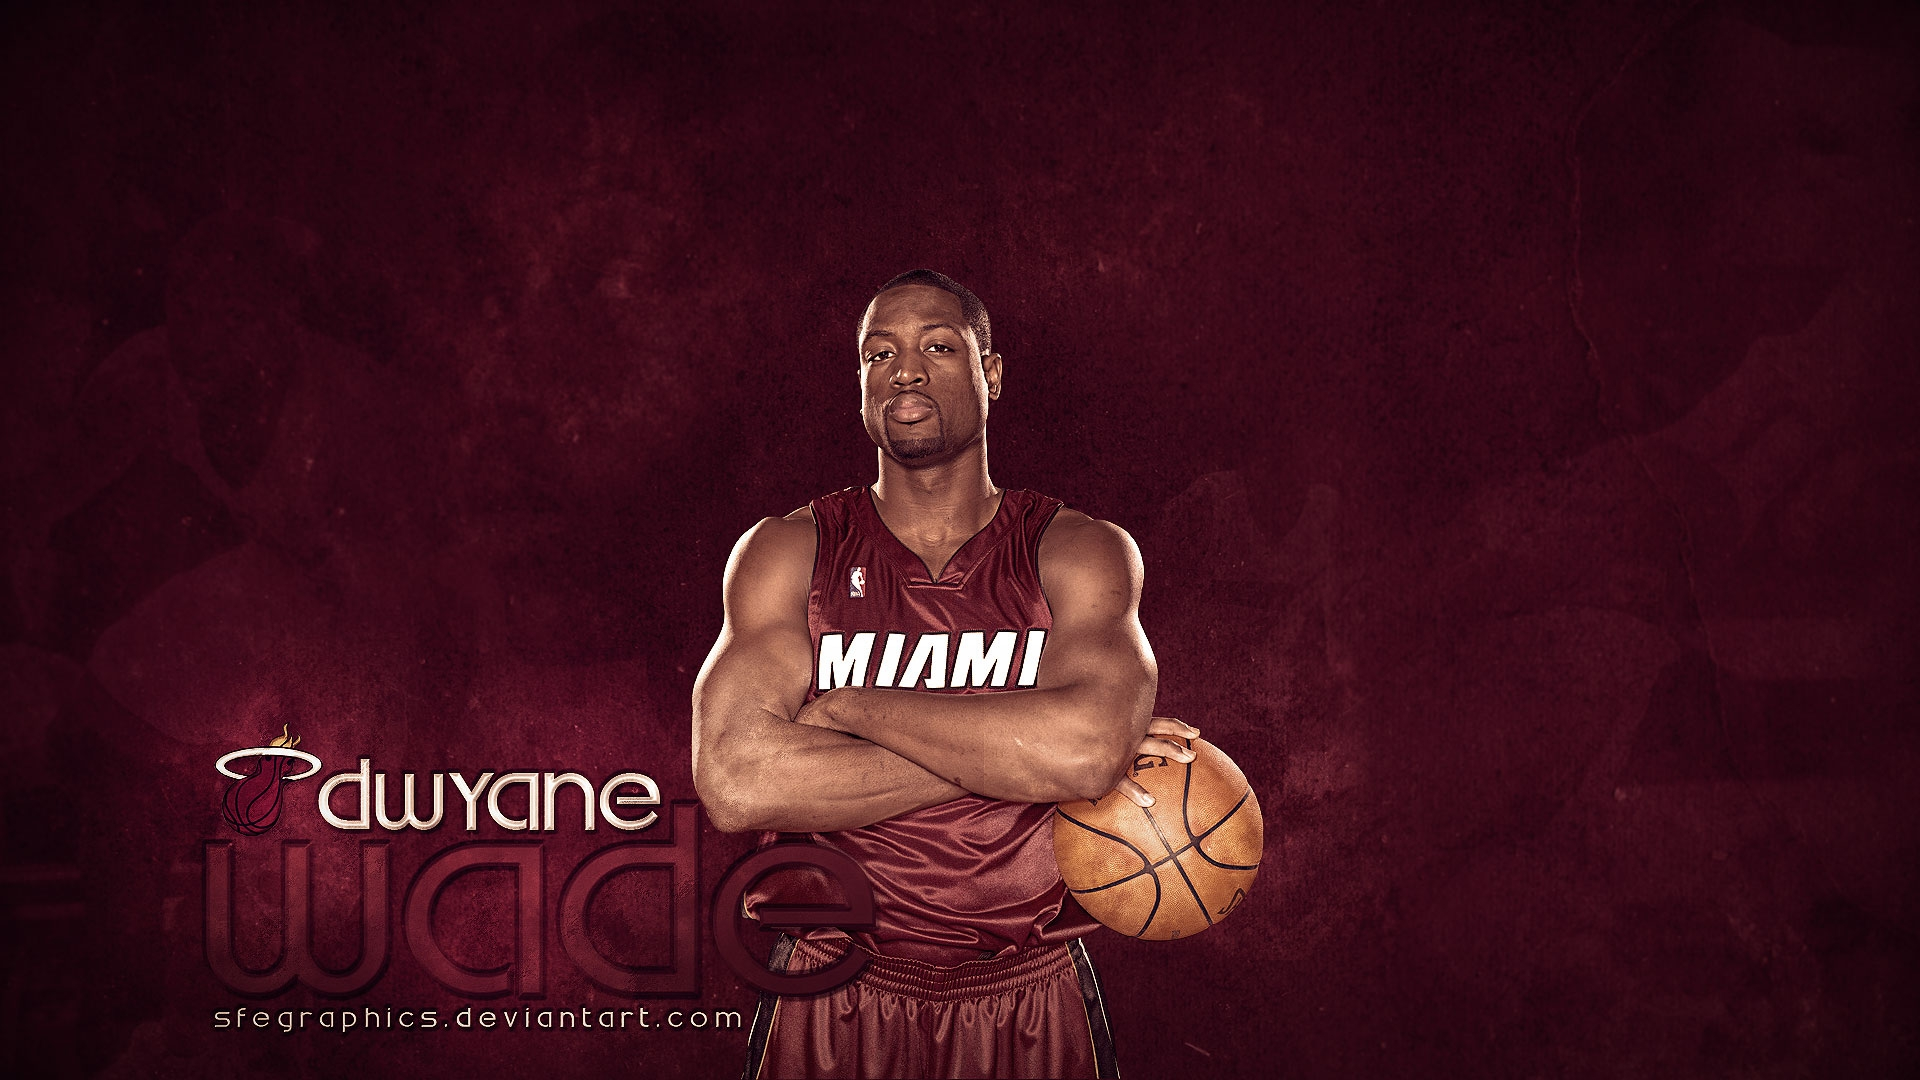 Dwayne Wade NBA Wallpaper